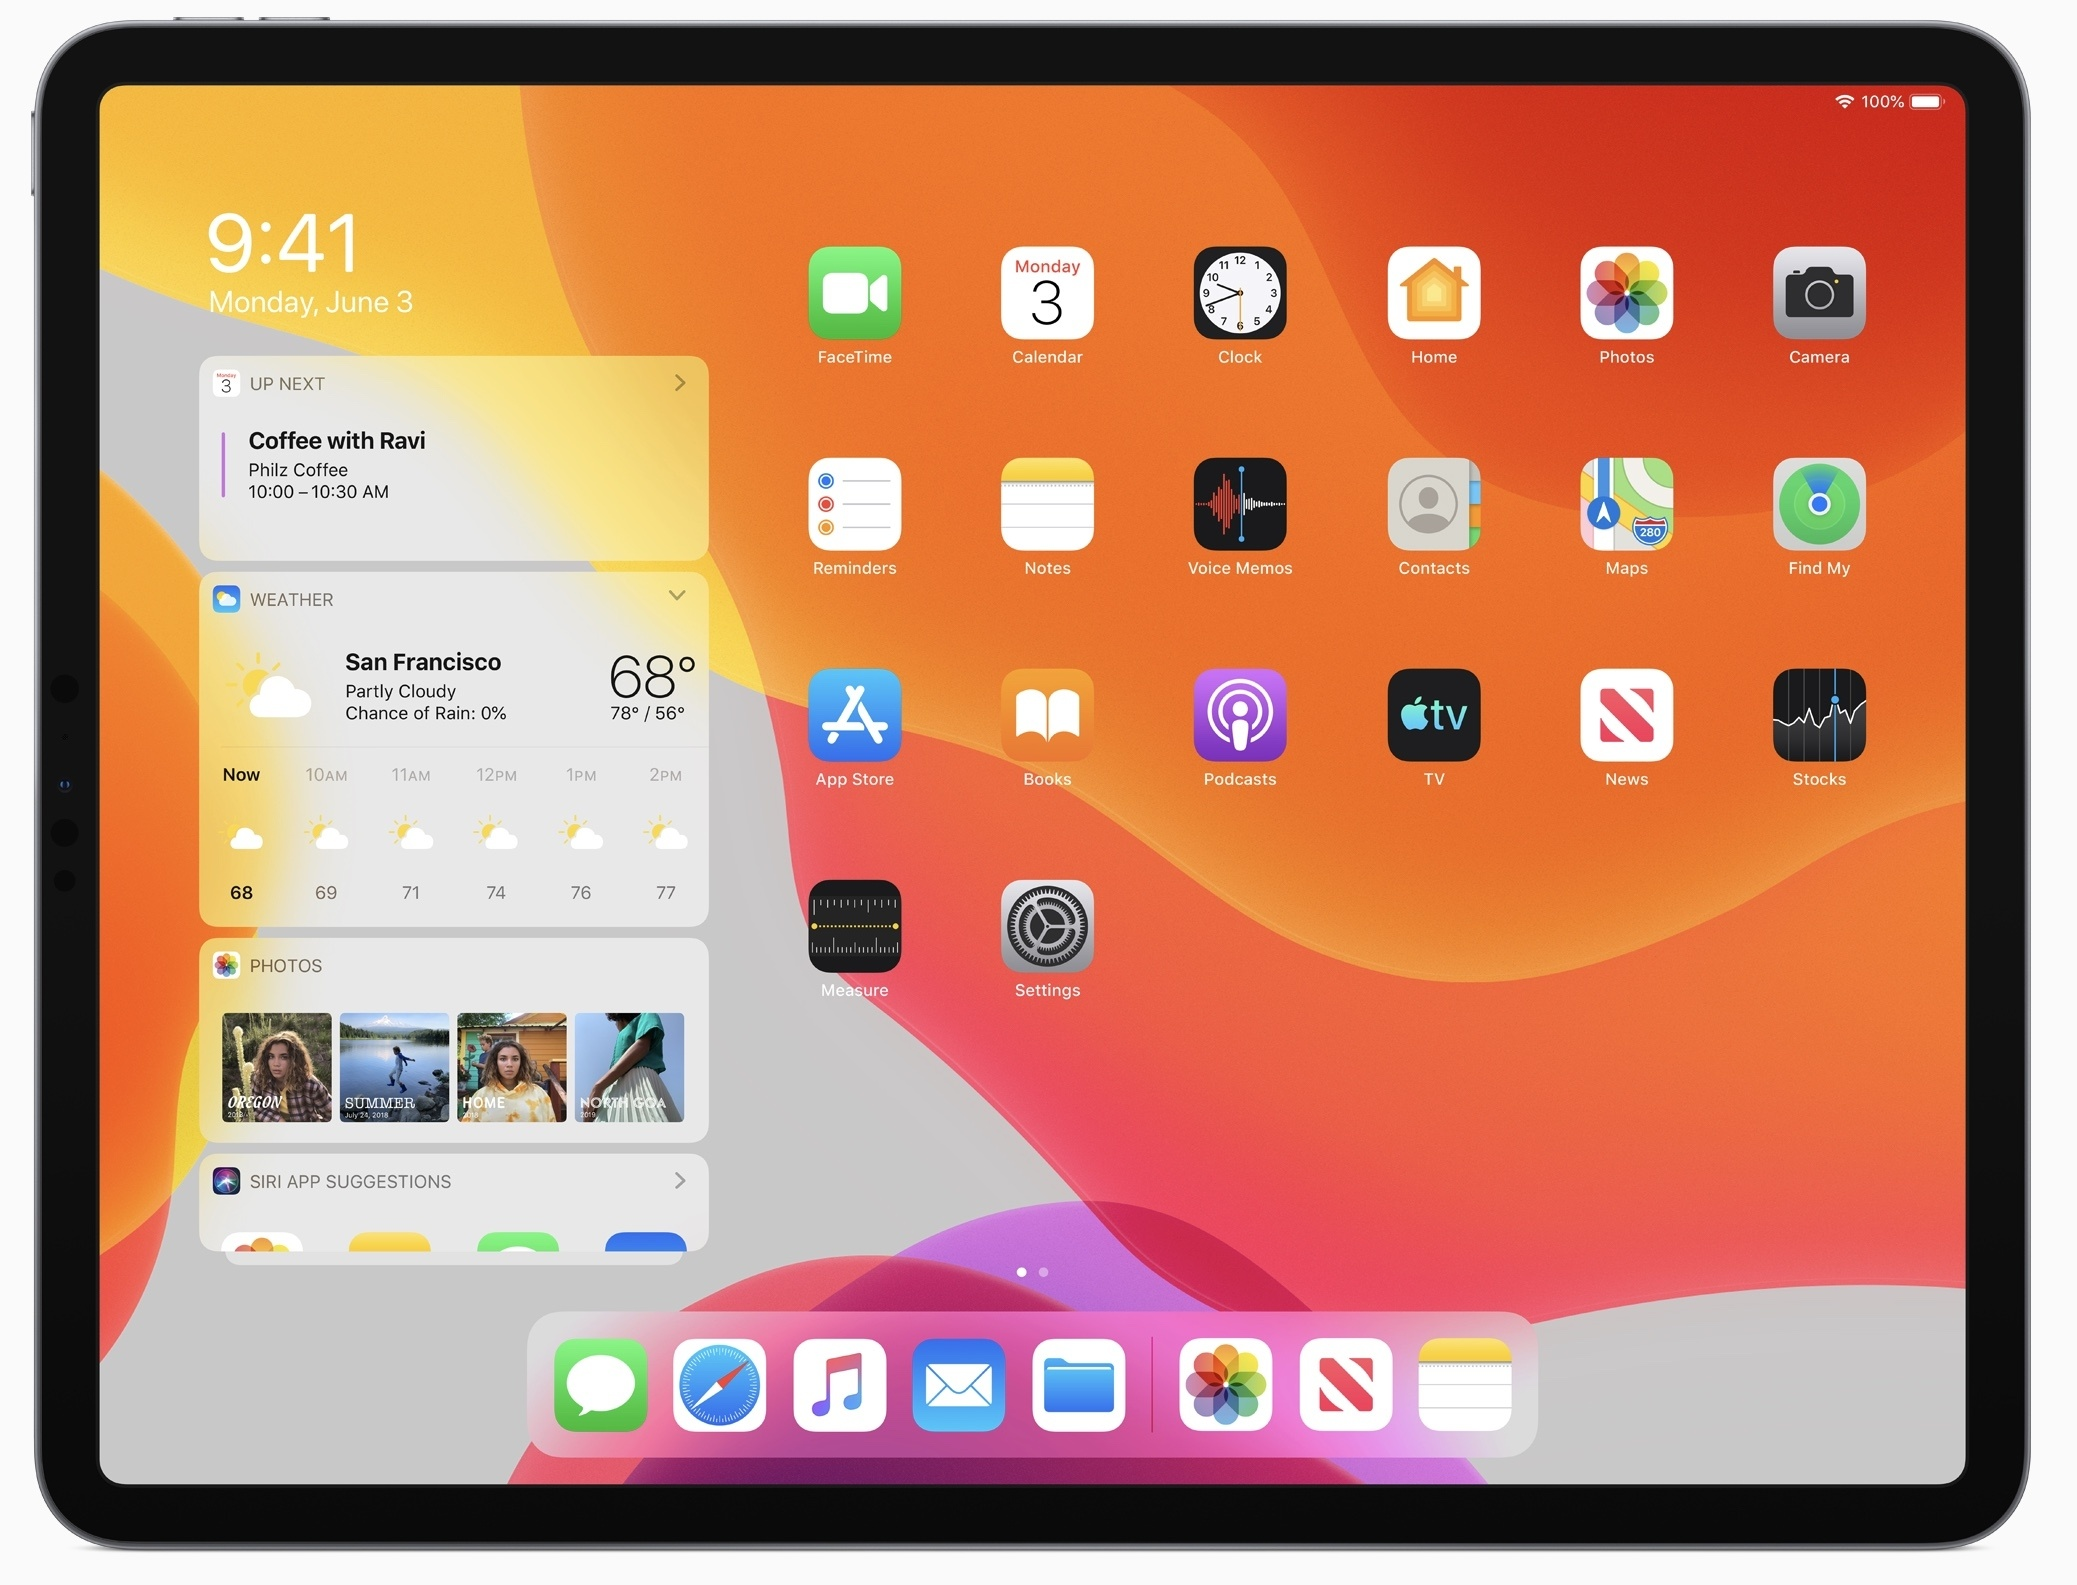 iOS Tutorial: Steps to Integrate Multiple Windows Feature (Introduced in iOS 13) in iPadOS